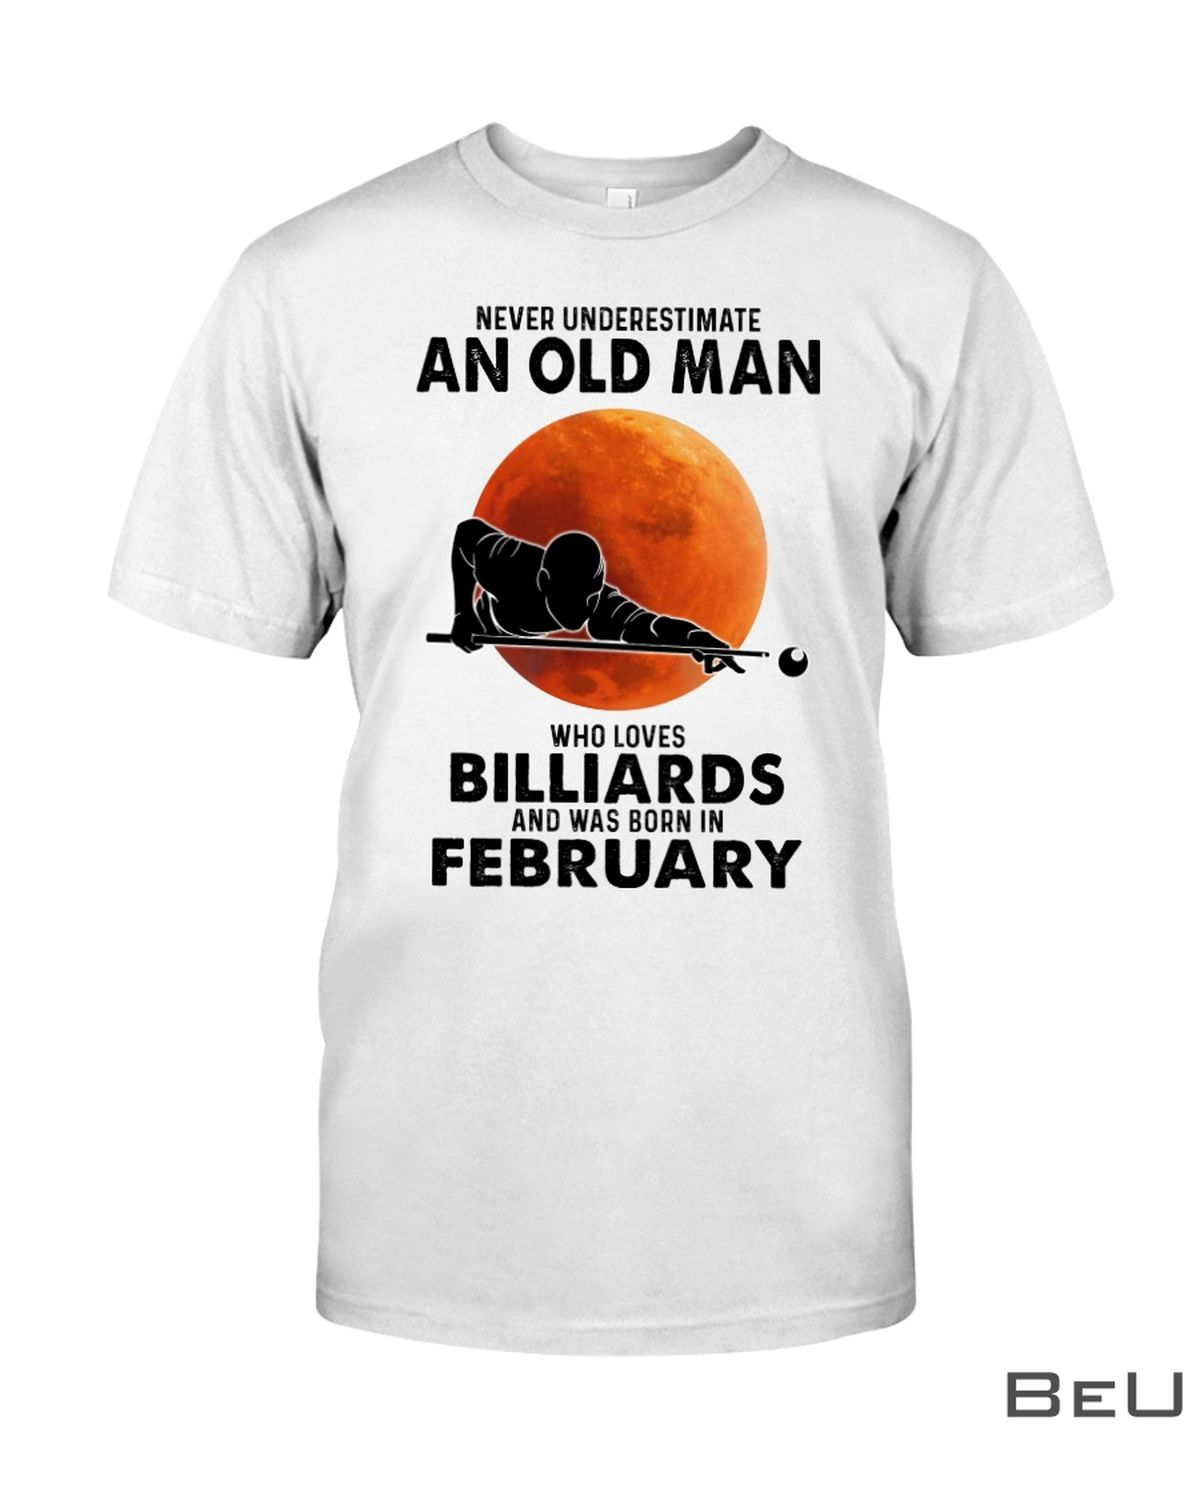 Never Underestimate An Old Man Who Loves Billiards And Was Born In February Shirt, hoodie, tank top